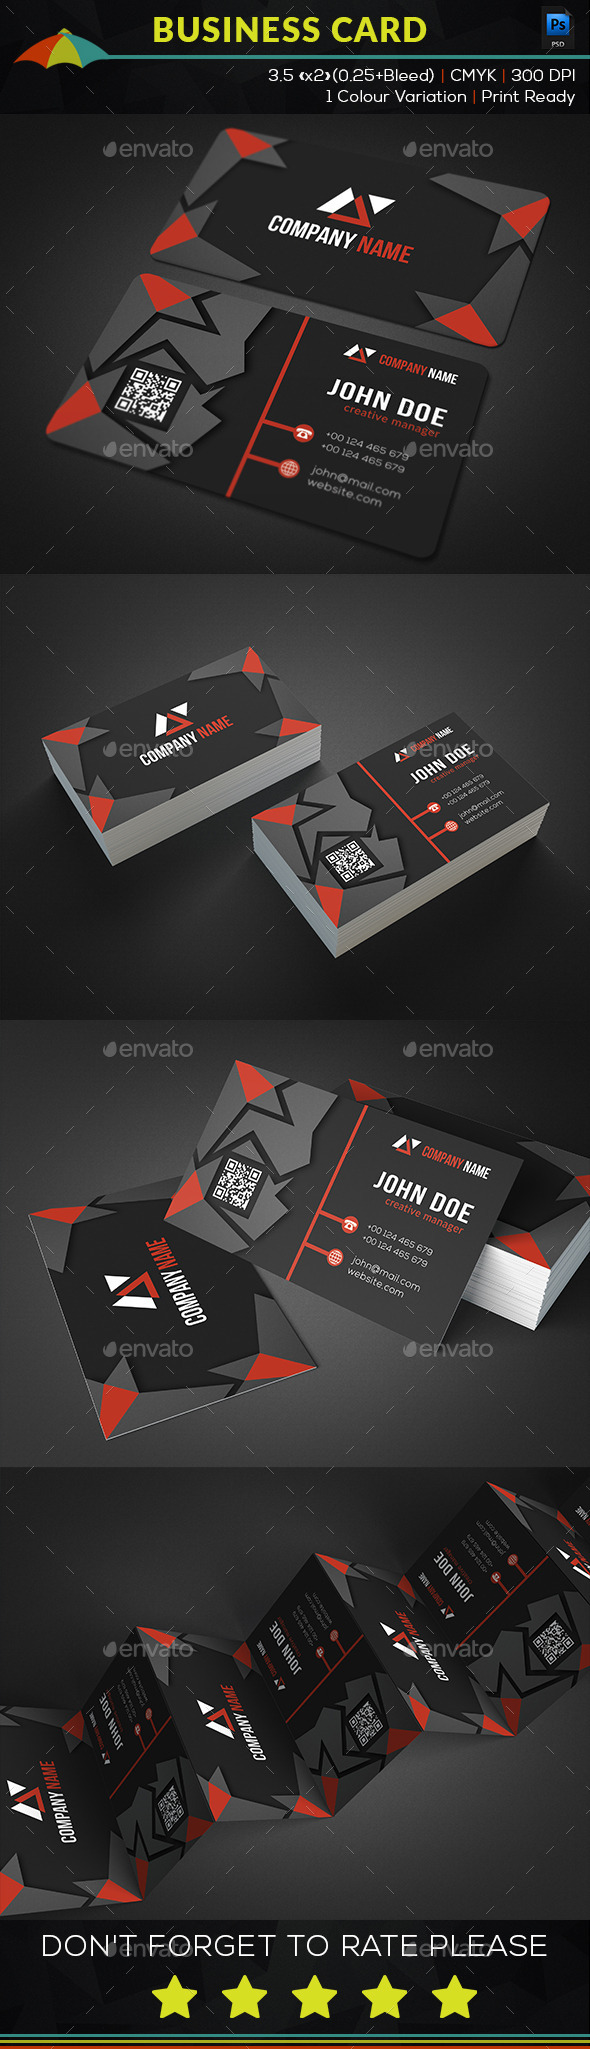 Creative Simple Business Card - Business Cards Print